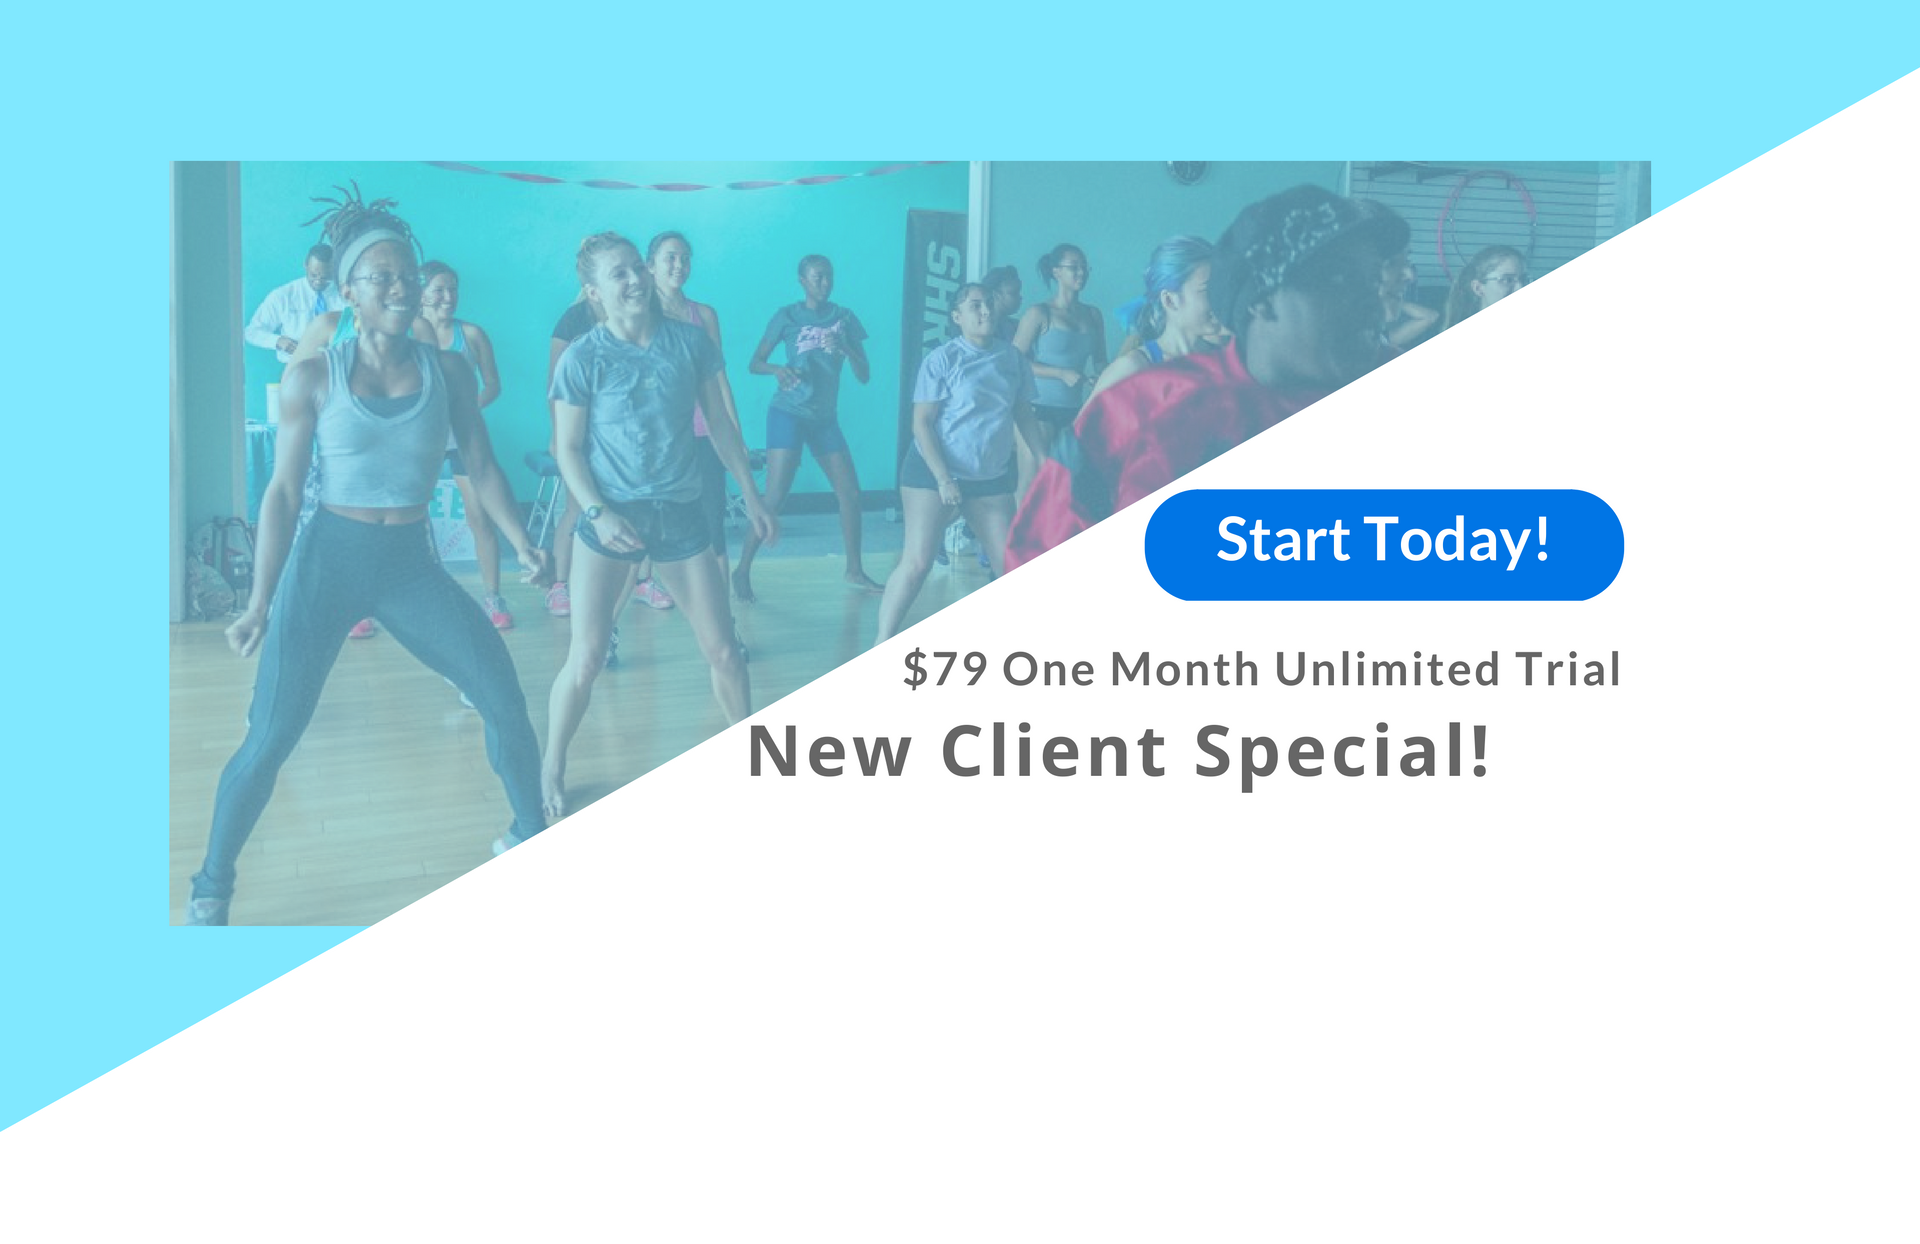 New Client Special! (2)